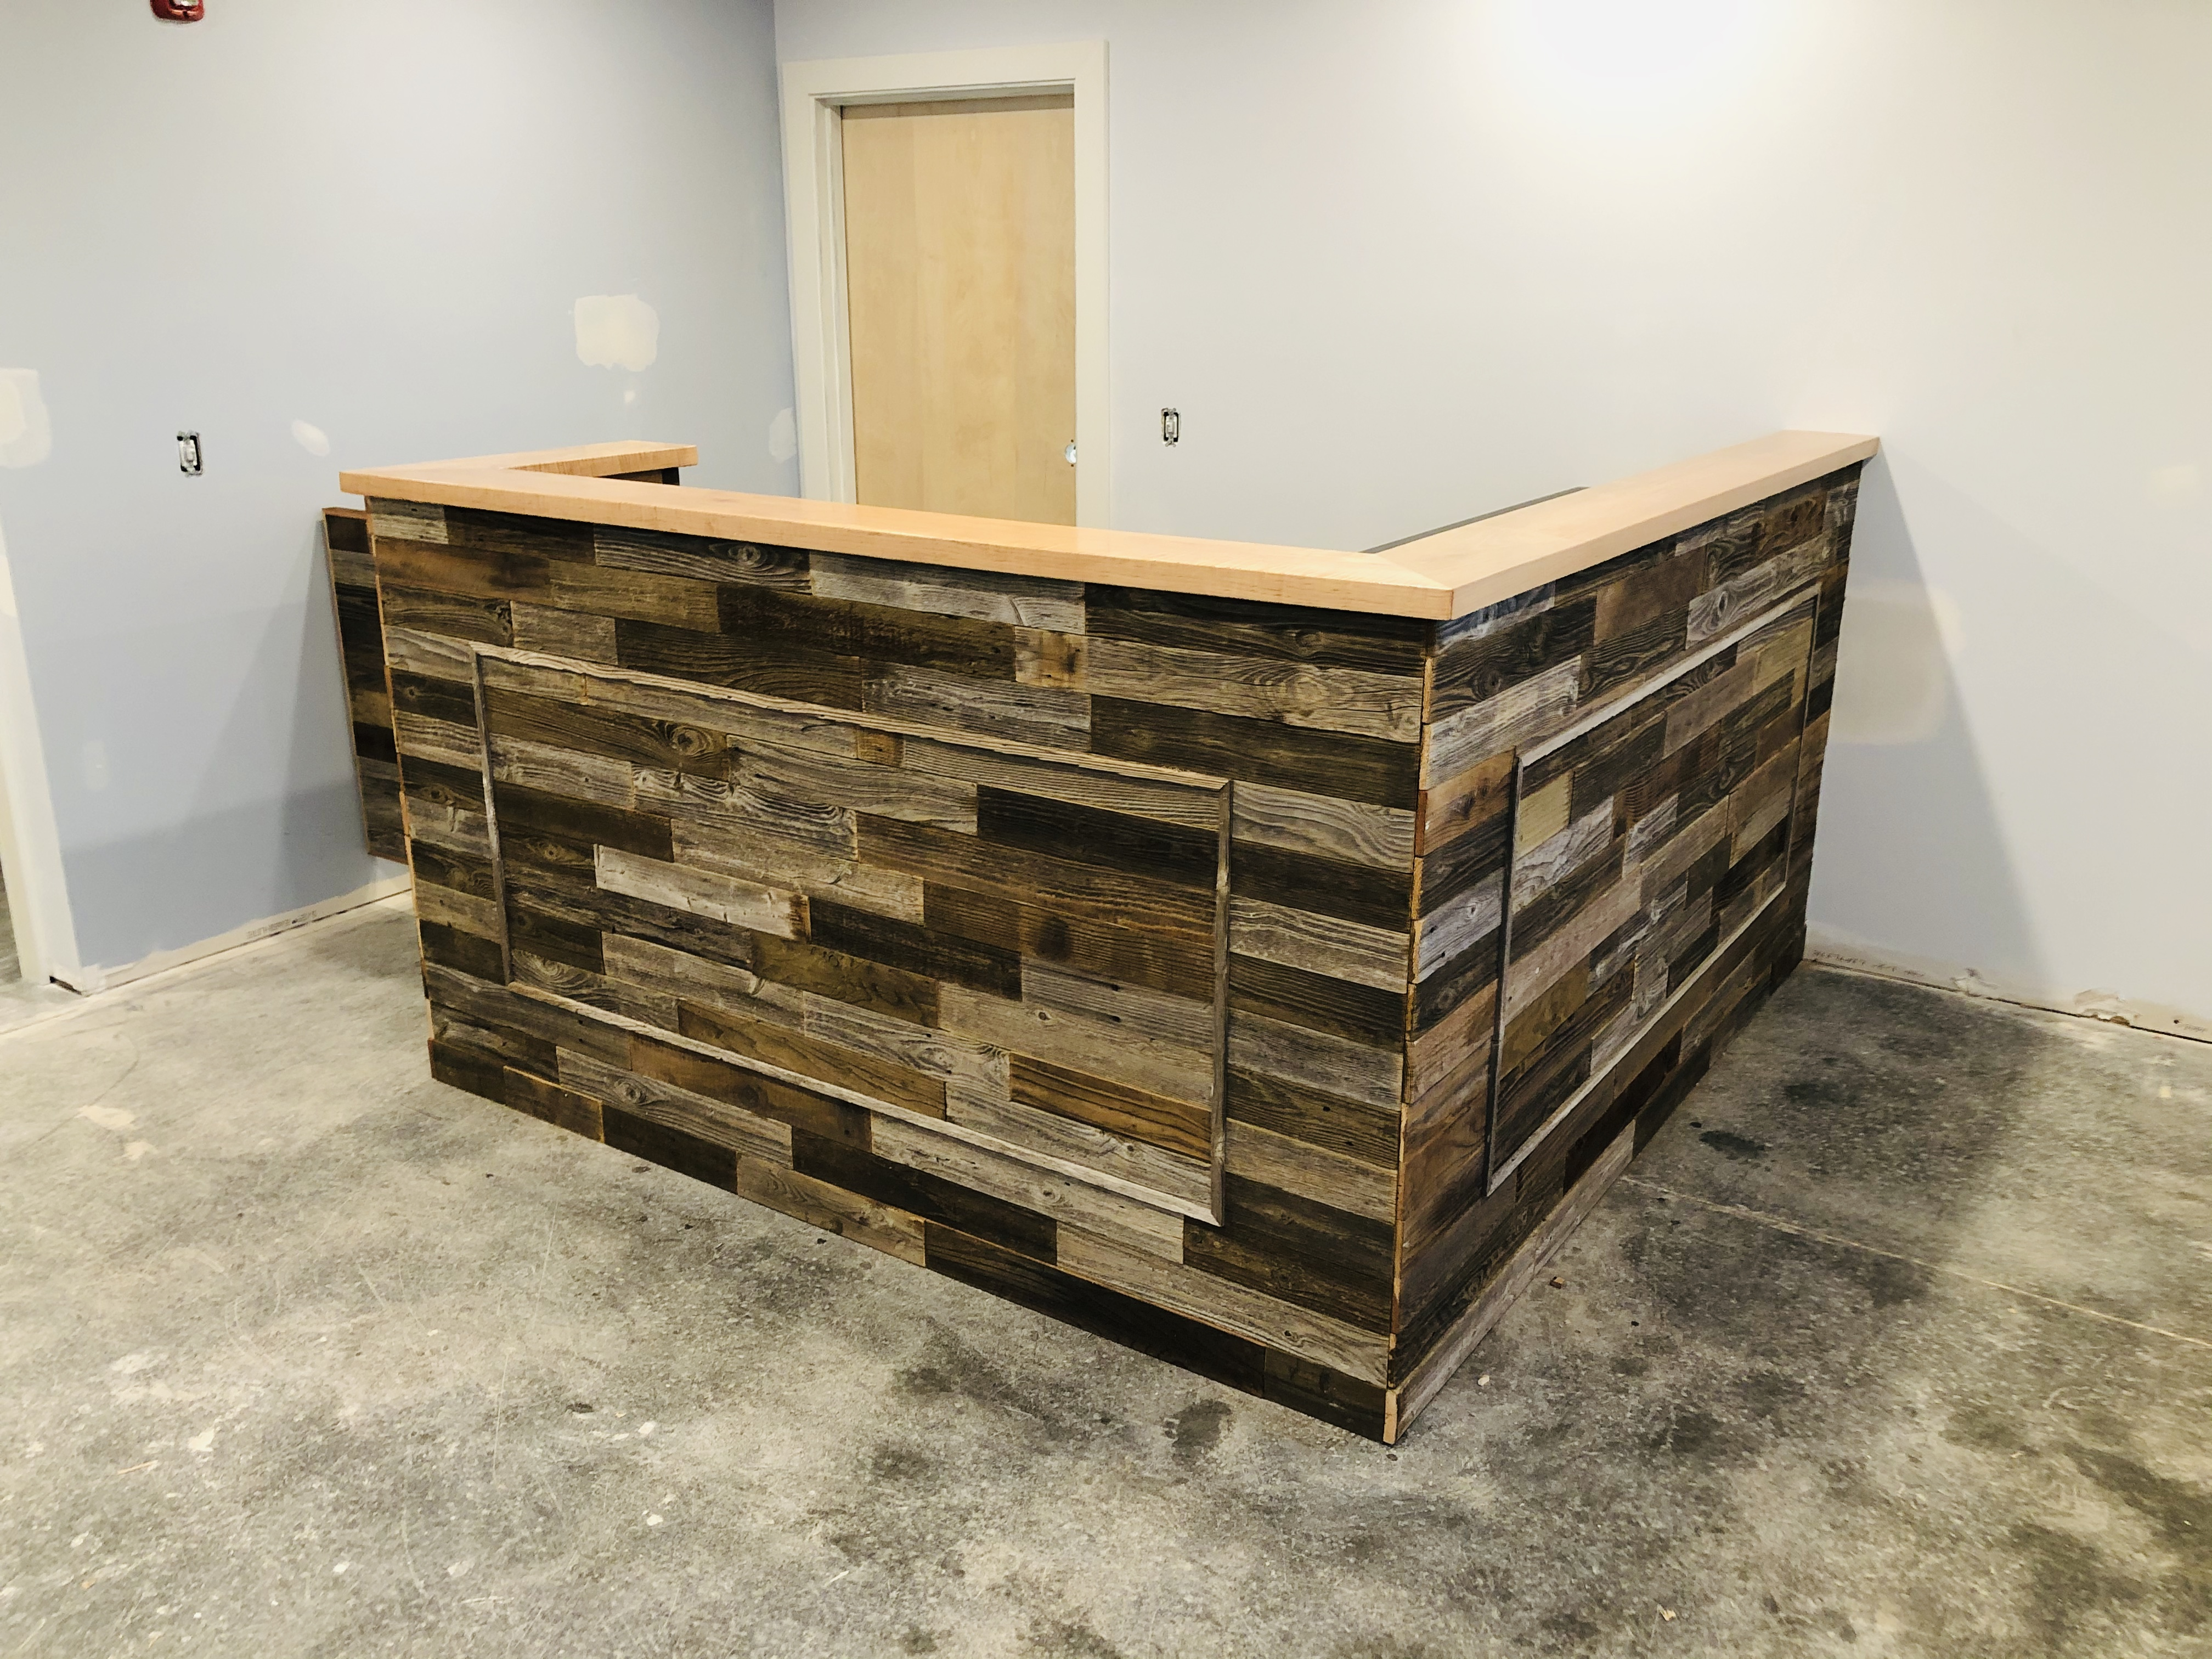 Pallet wood reception area